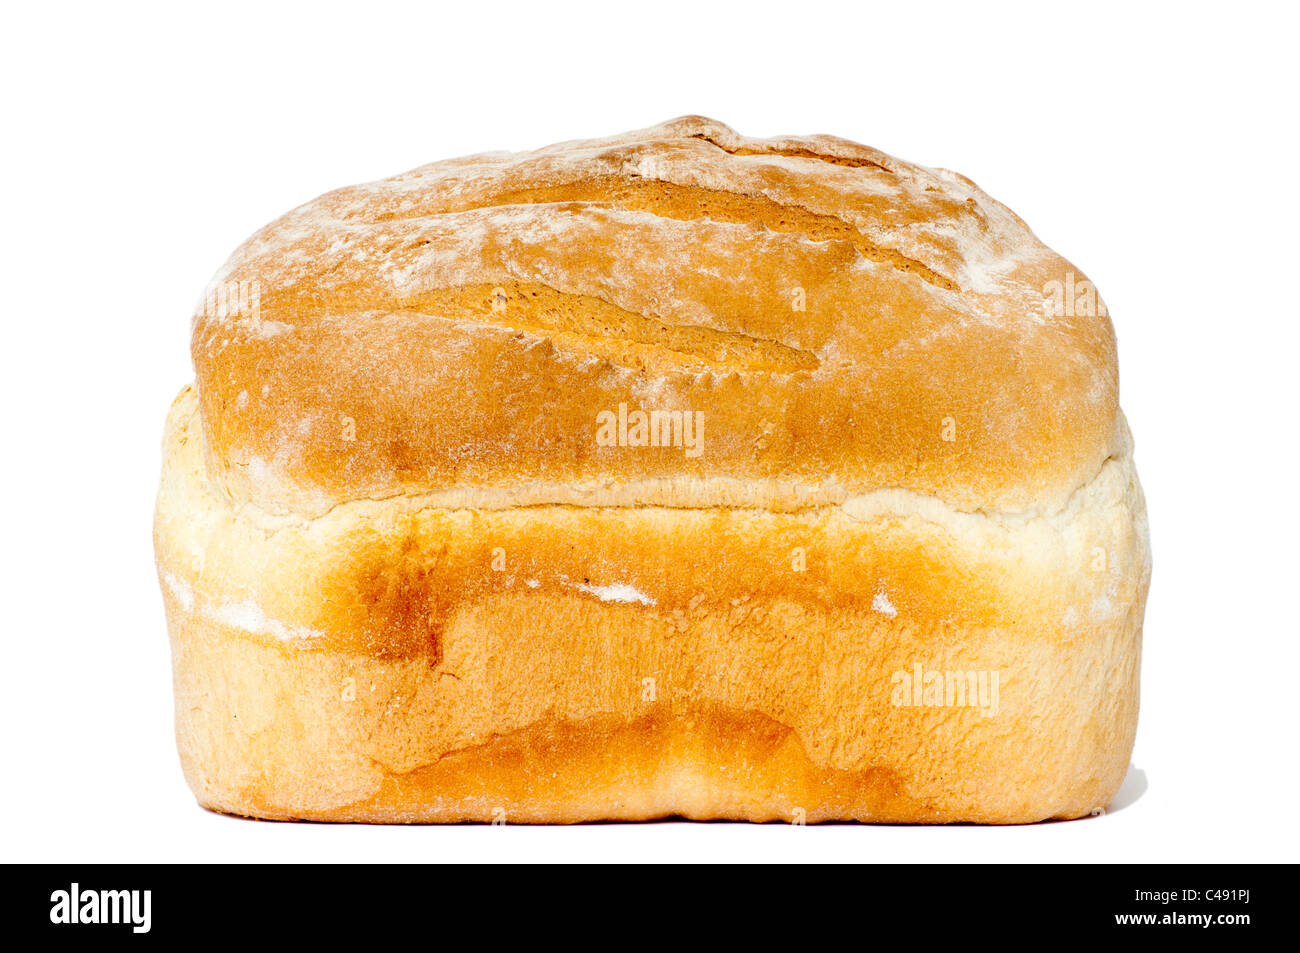 Fresh Uncut Loaf Of Bread - Stock Image